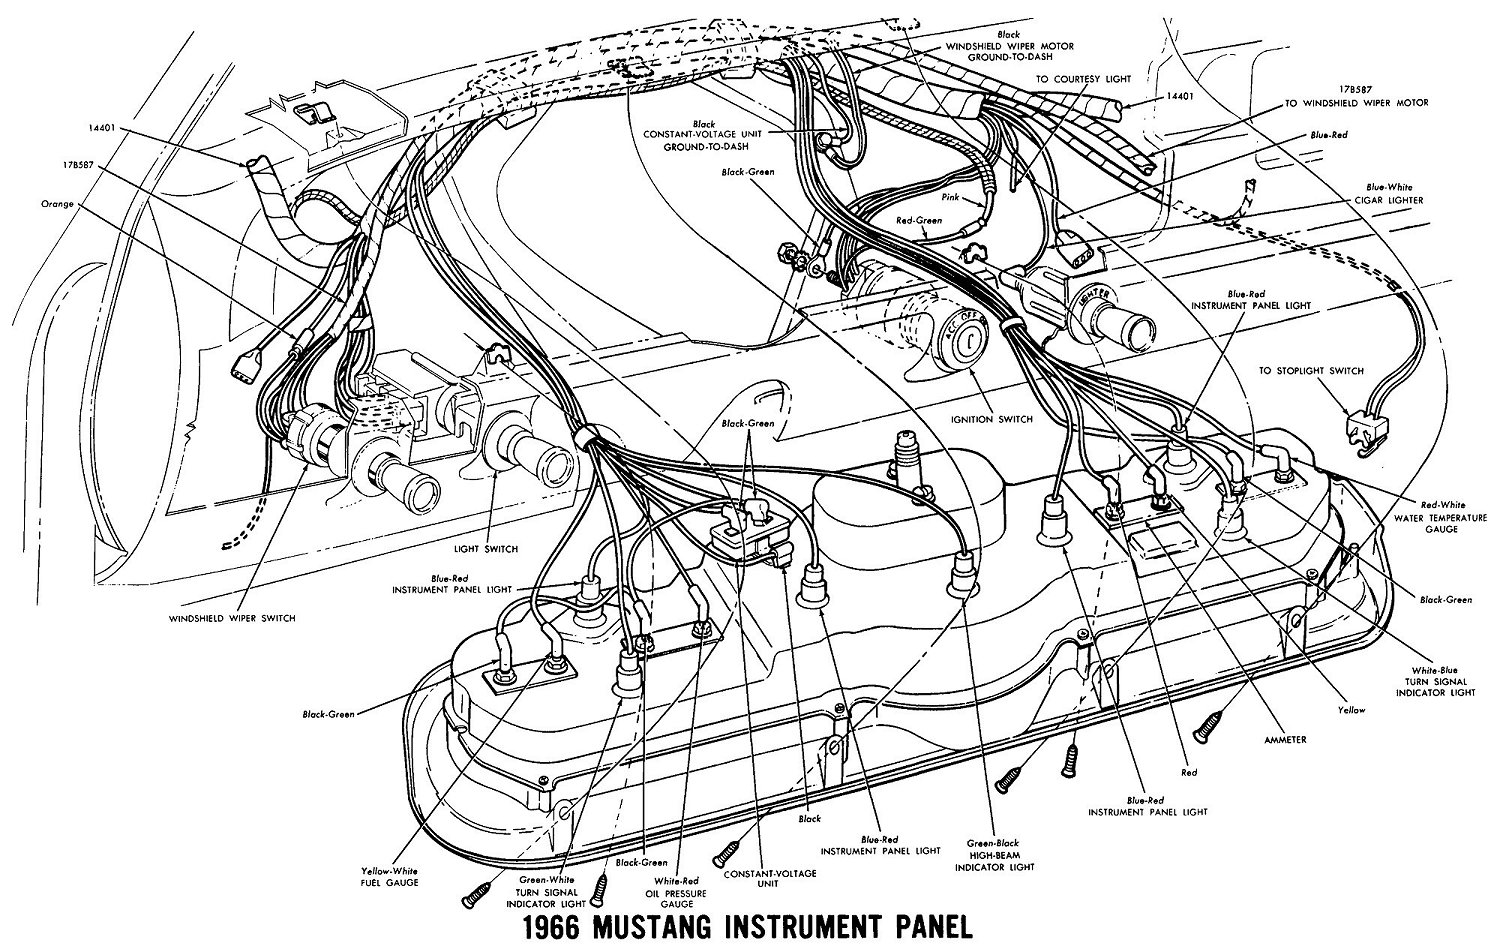 66instr 1966 mustang wiring diagrams average joe restoration 1966 mustang wiring diagrams at webbmarketing.co